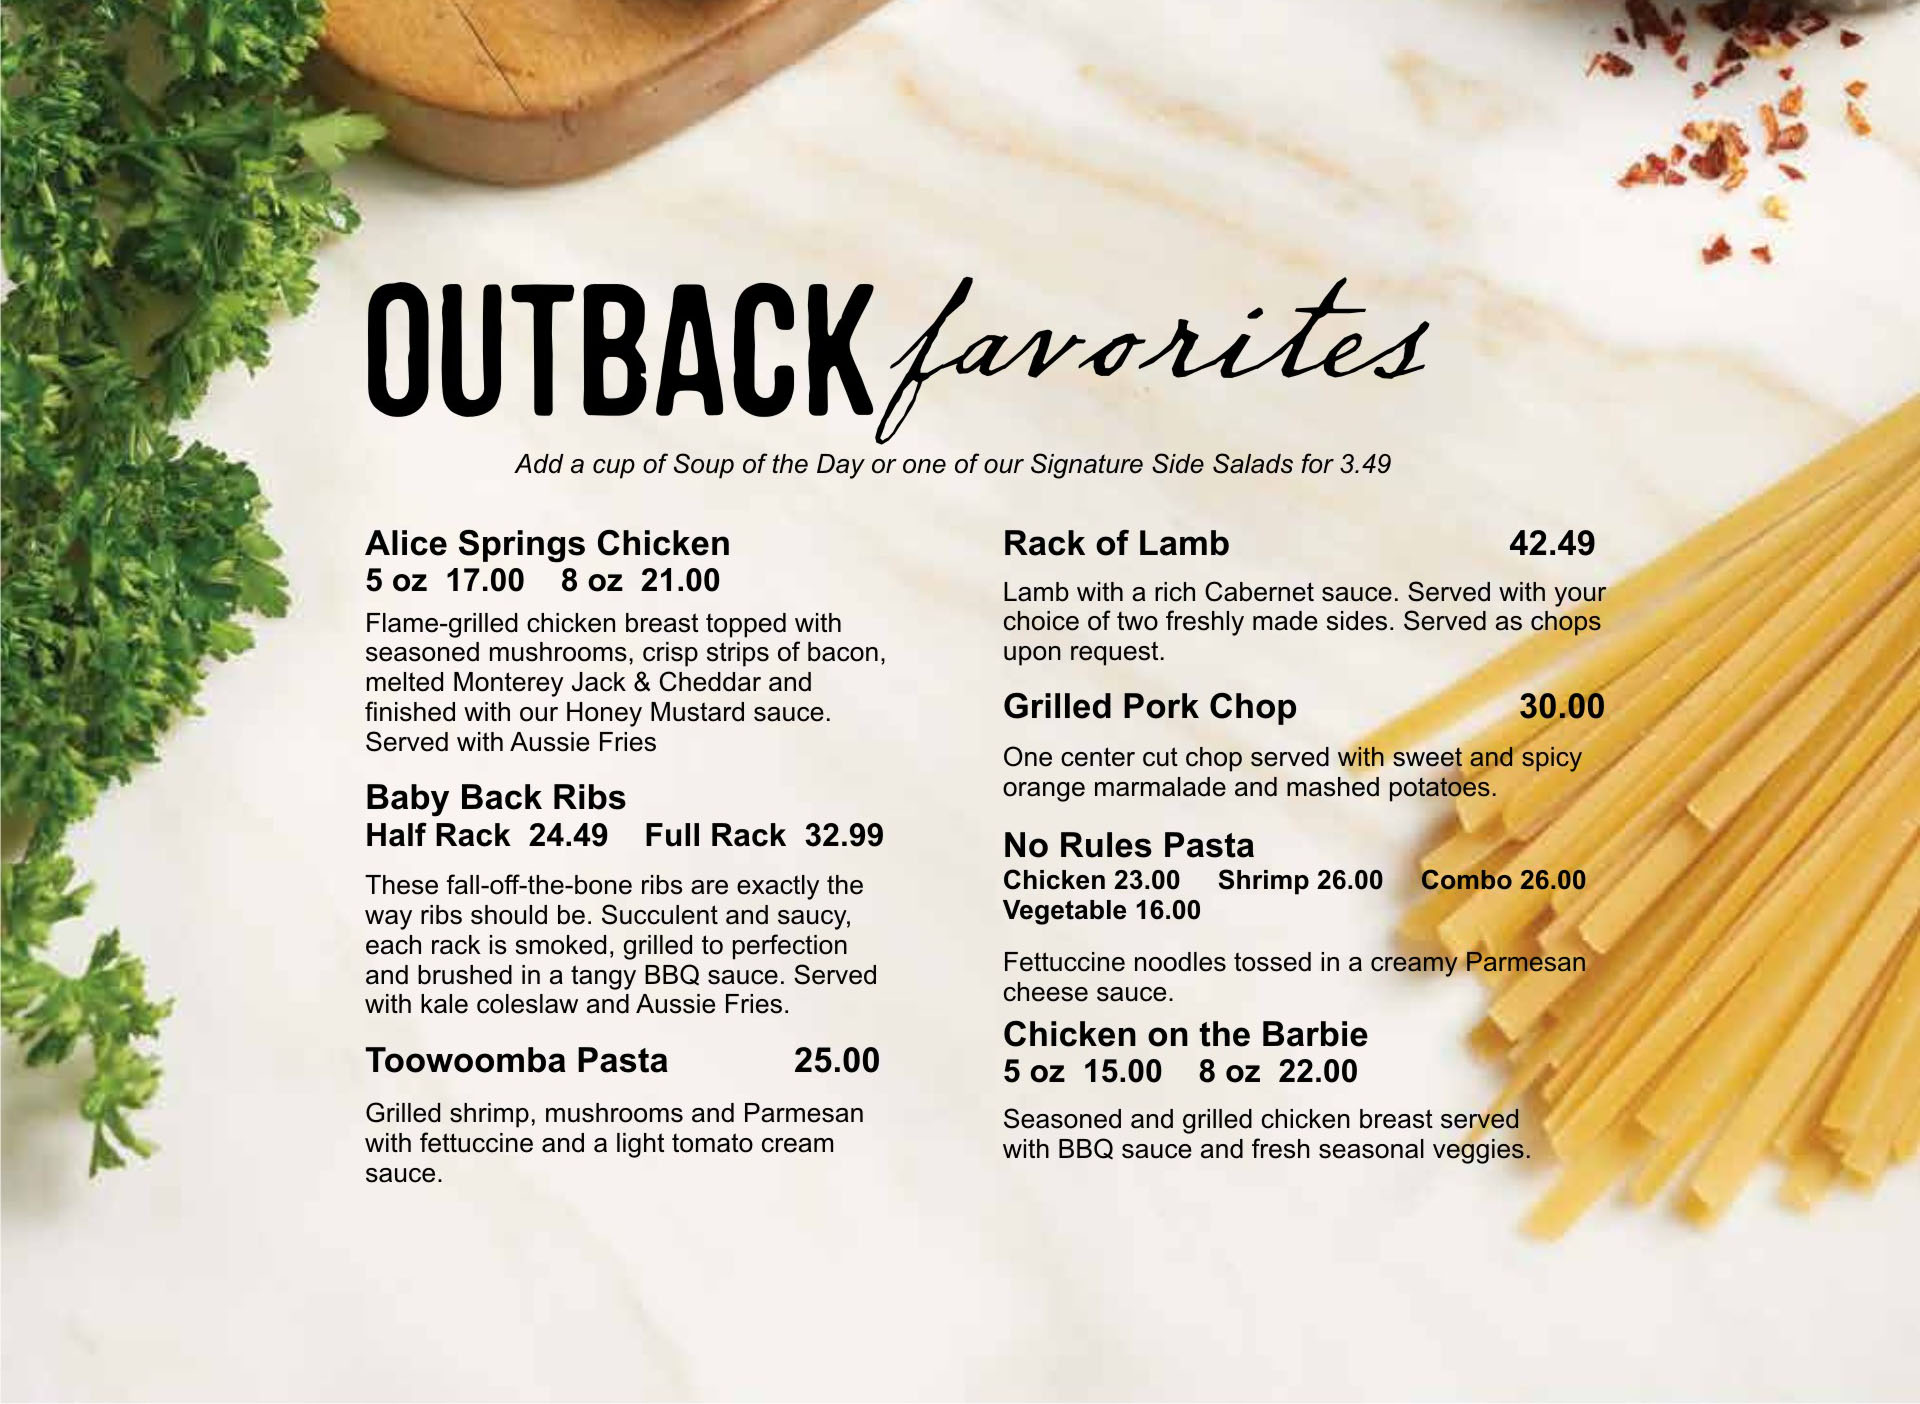 Outback favorites menu